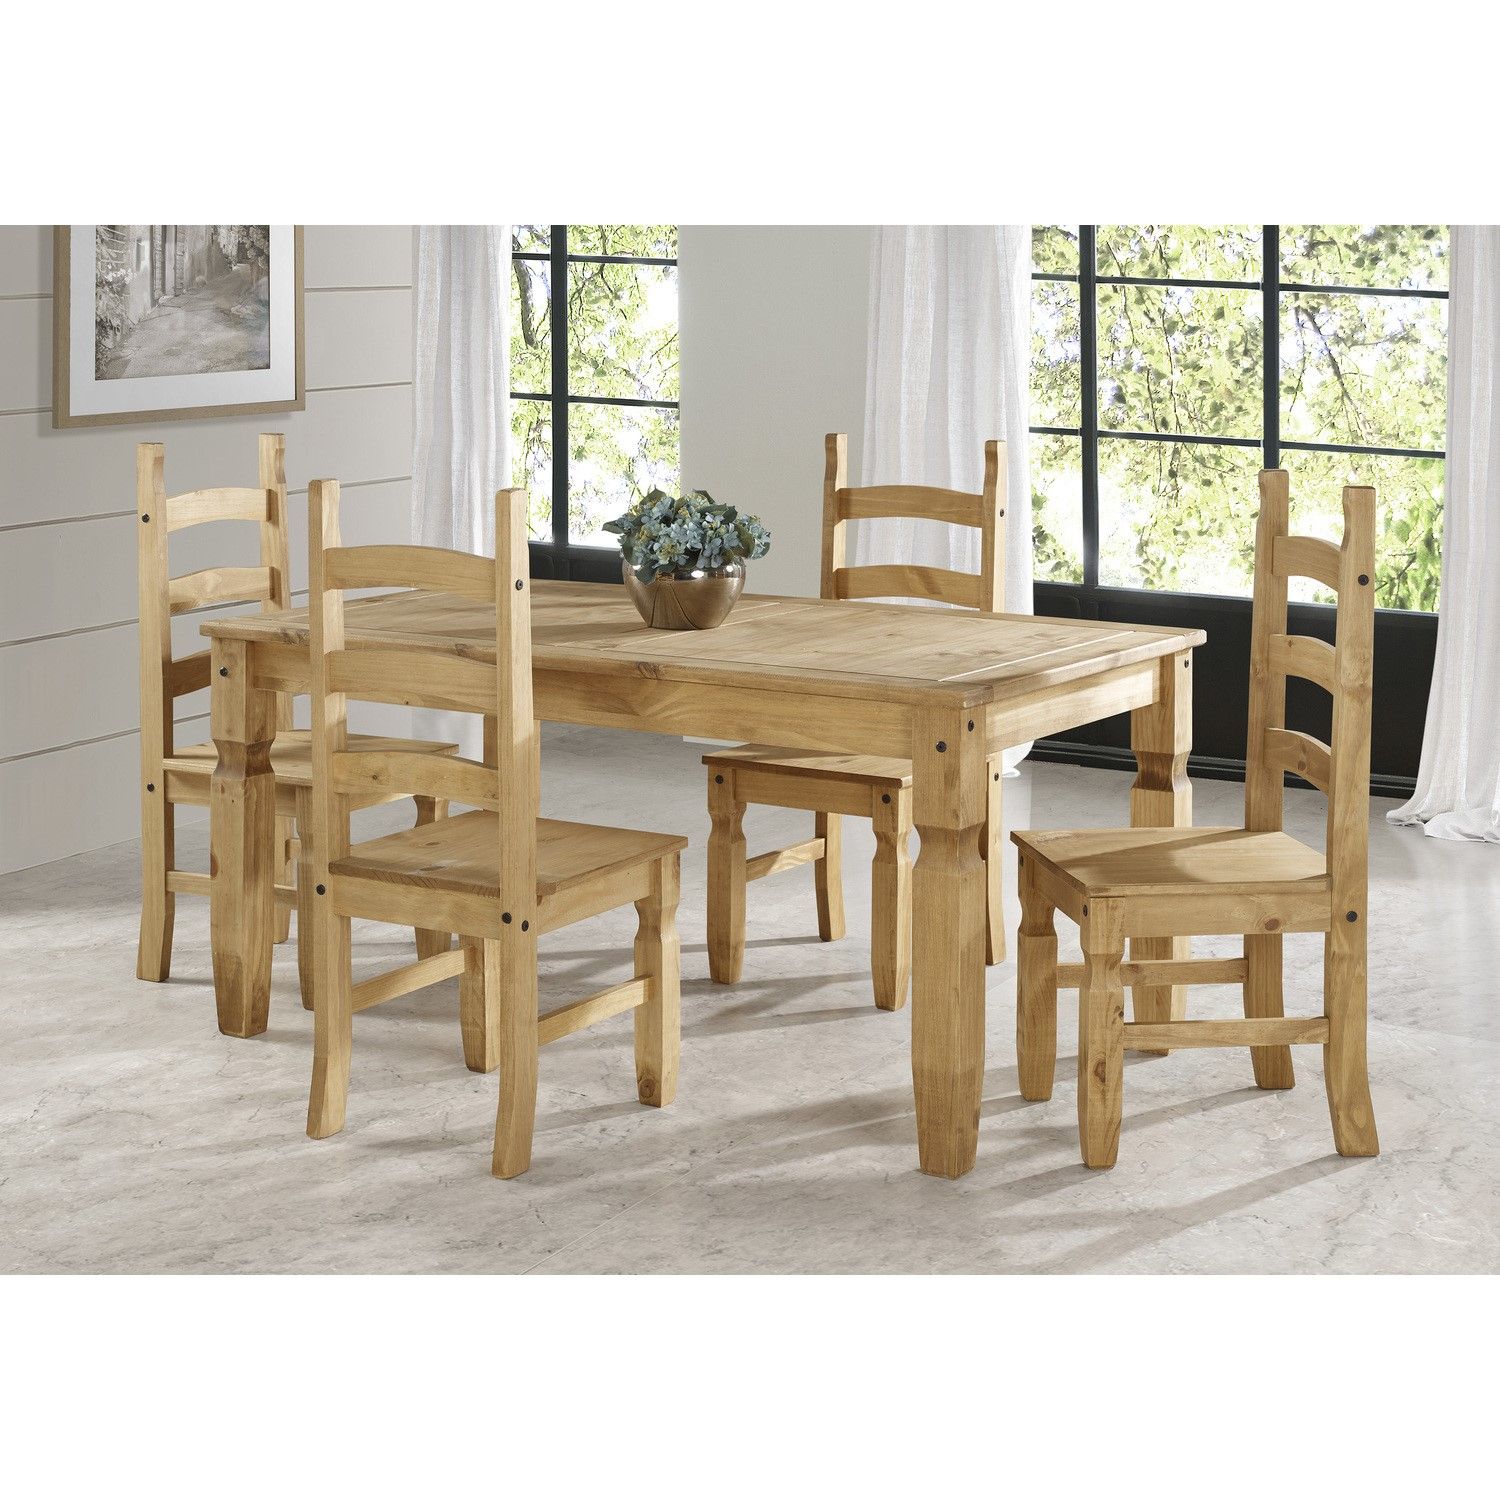 Corona Pine Solid Wood Dining Set With 1 Table 4 Chairs Furniture123